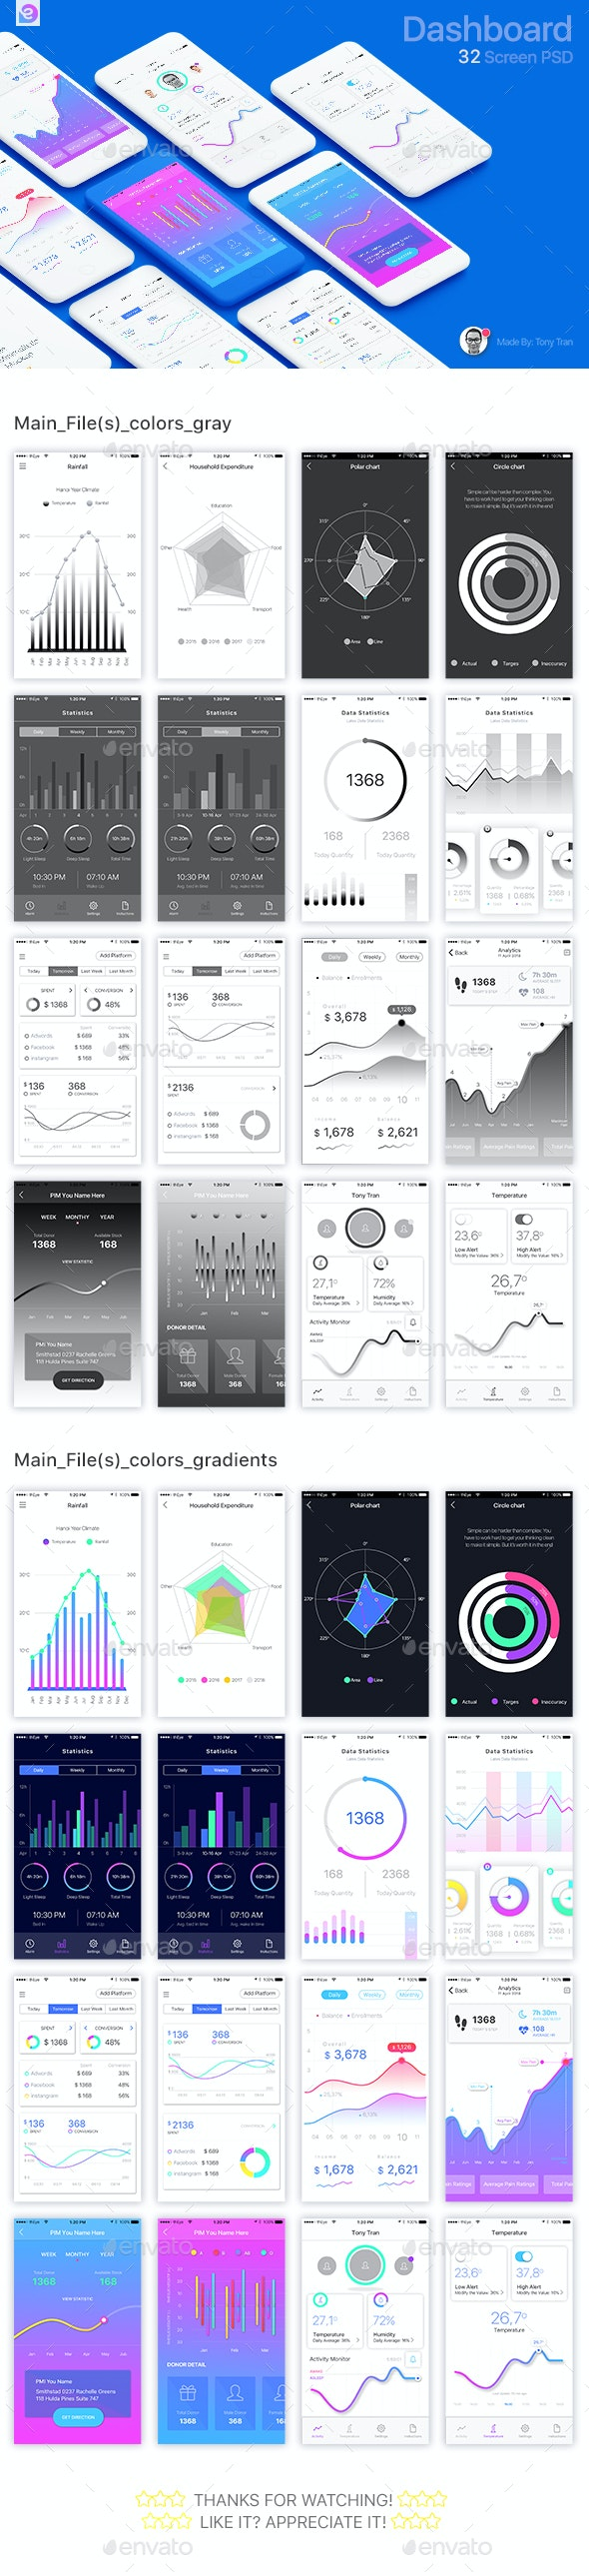 Mobile Theme UI Kit | Dashboard